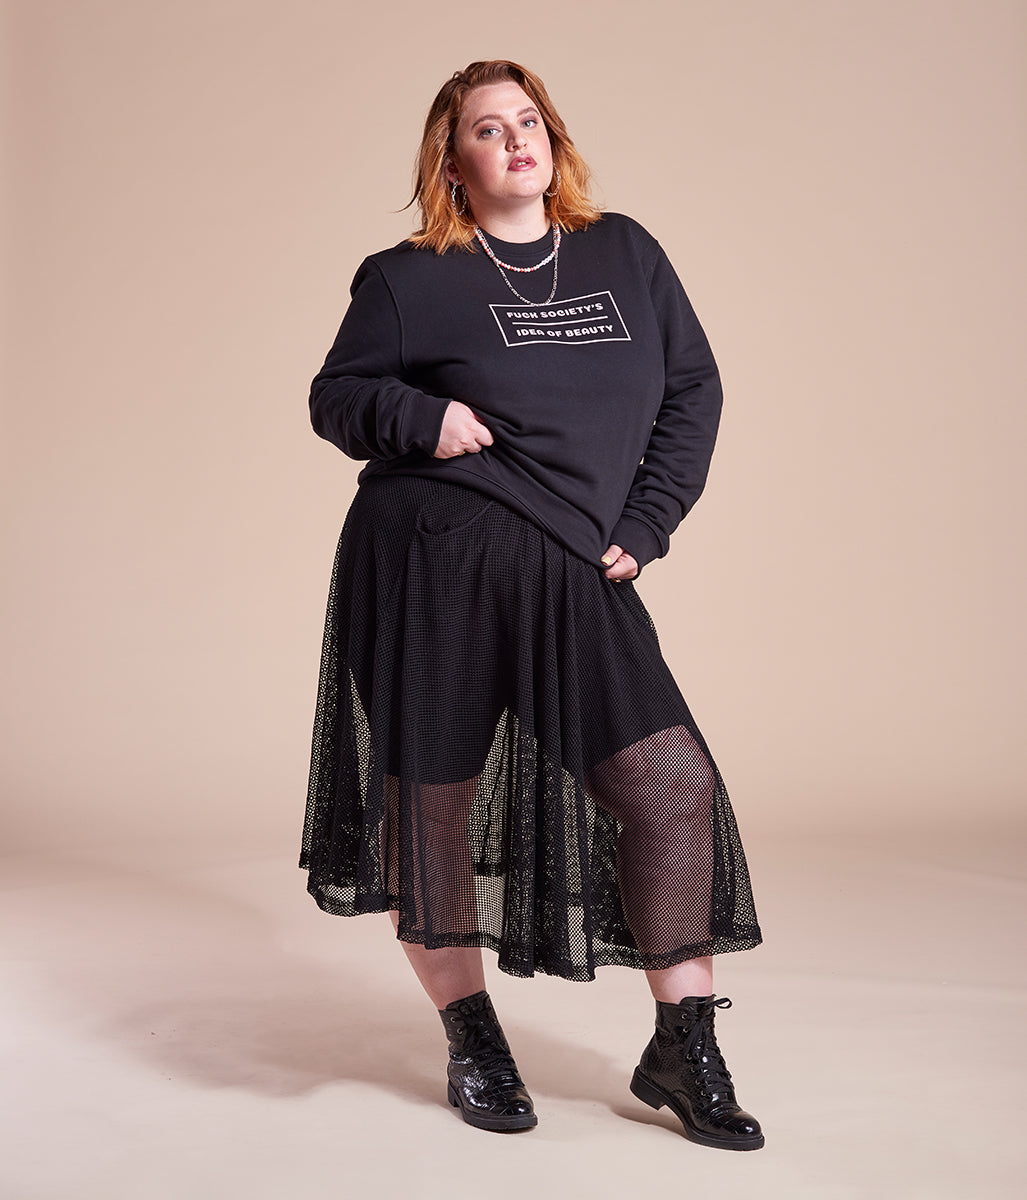 Laden Sie das Bild in den Galerie-Viewer, Favie Curvy Fashion nachhaltiges Sweatshirt Statement Fuck Society's Idea schwarz Plus Size Vorderansicht